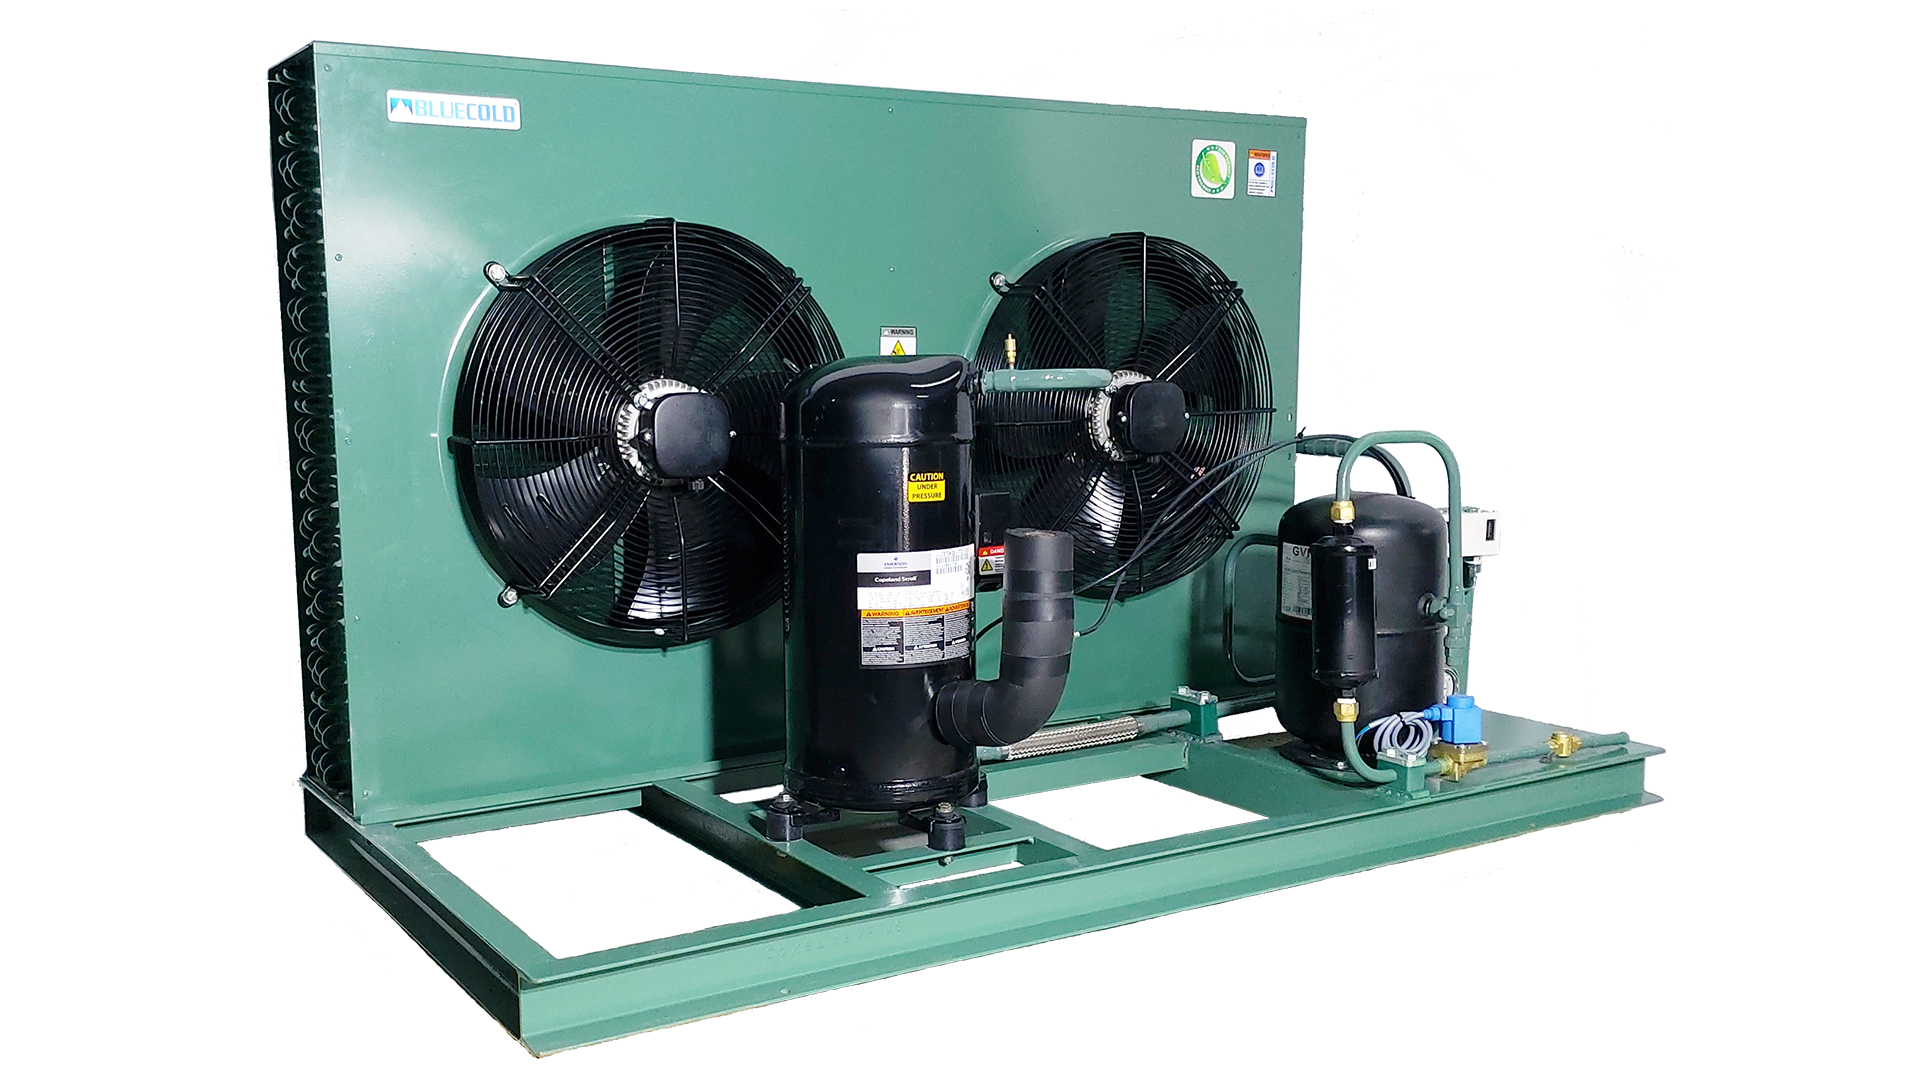 Green condensing unit with Emerson compressor manufactured by Blue Cold Refrigeration